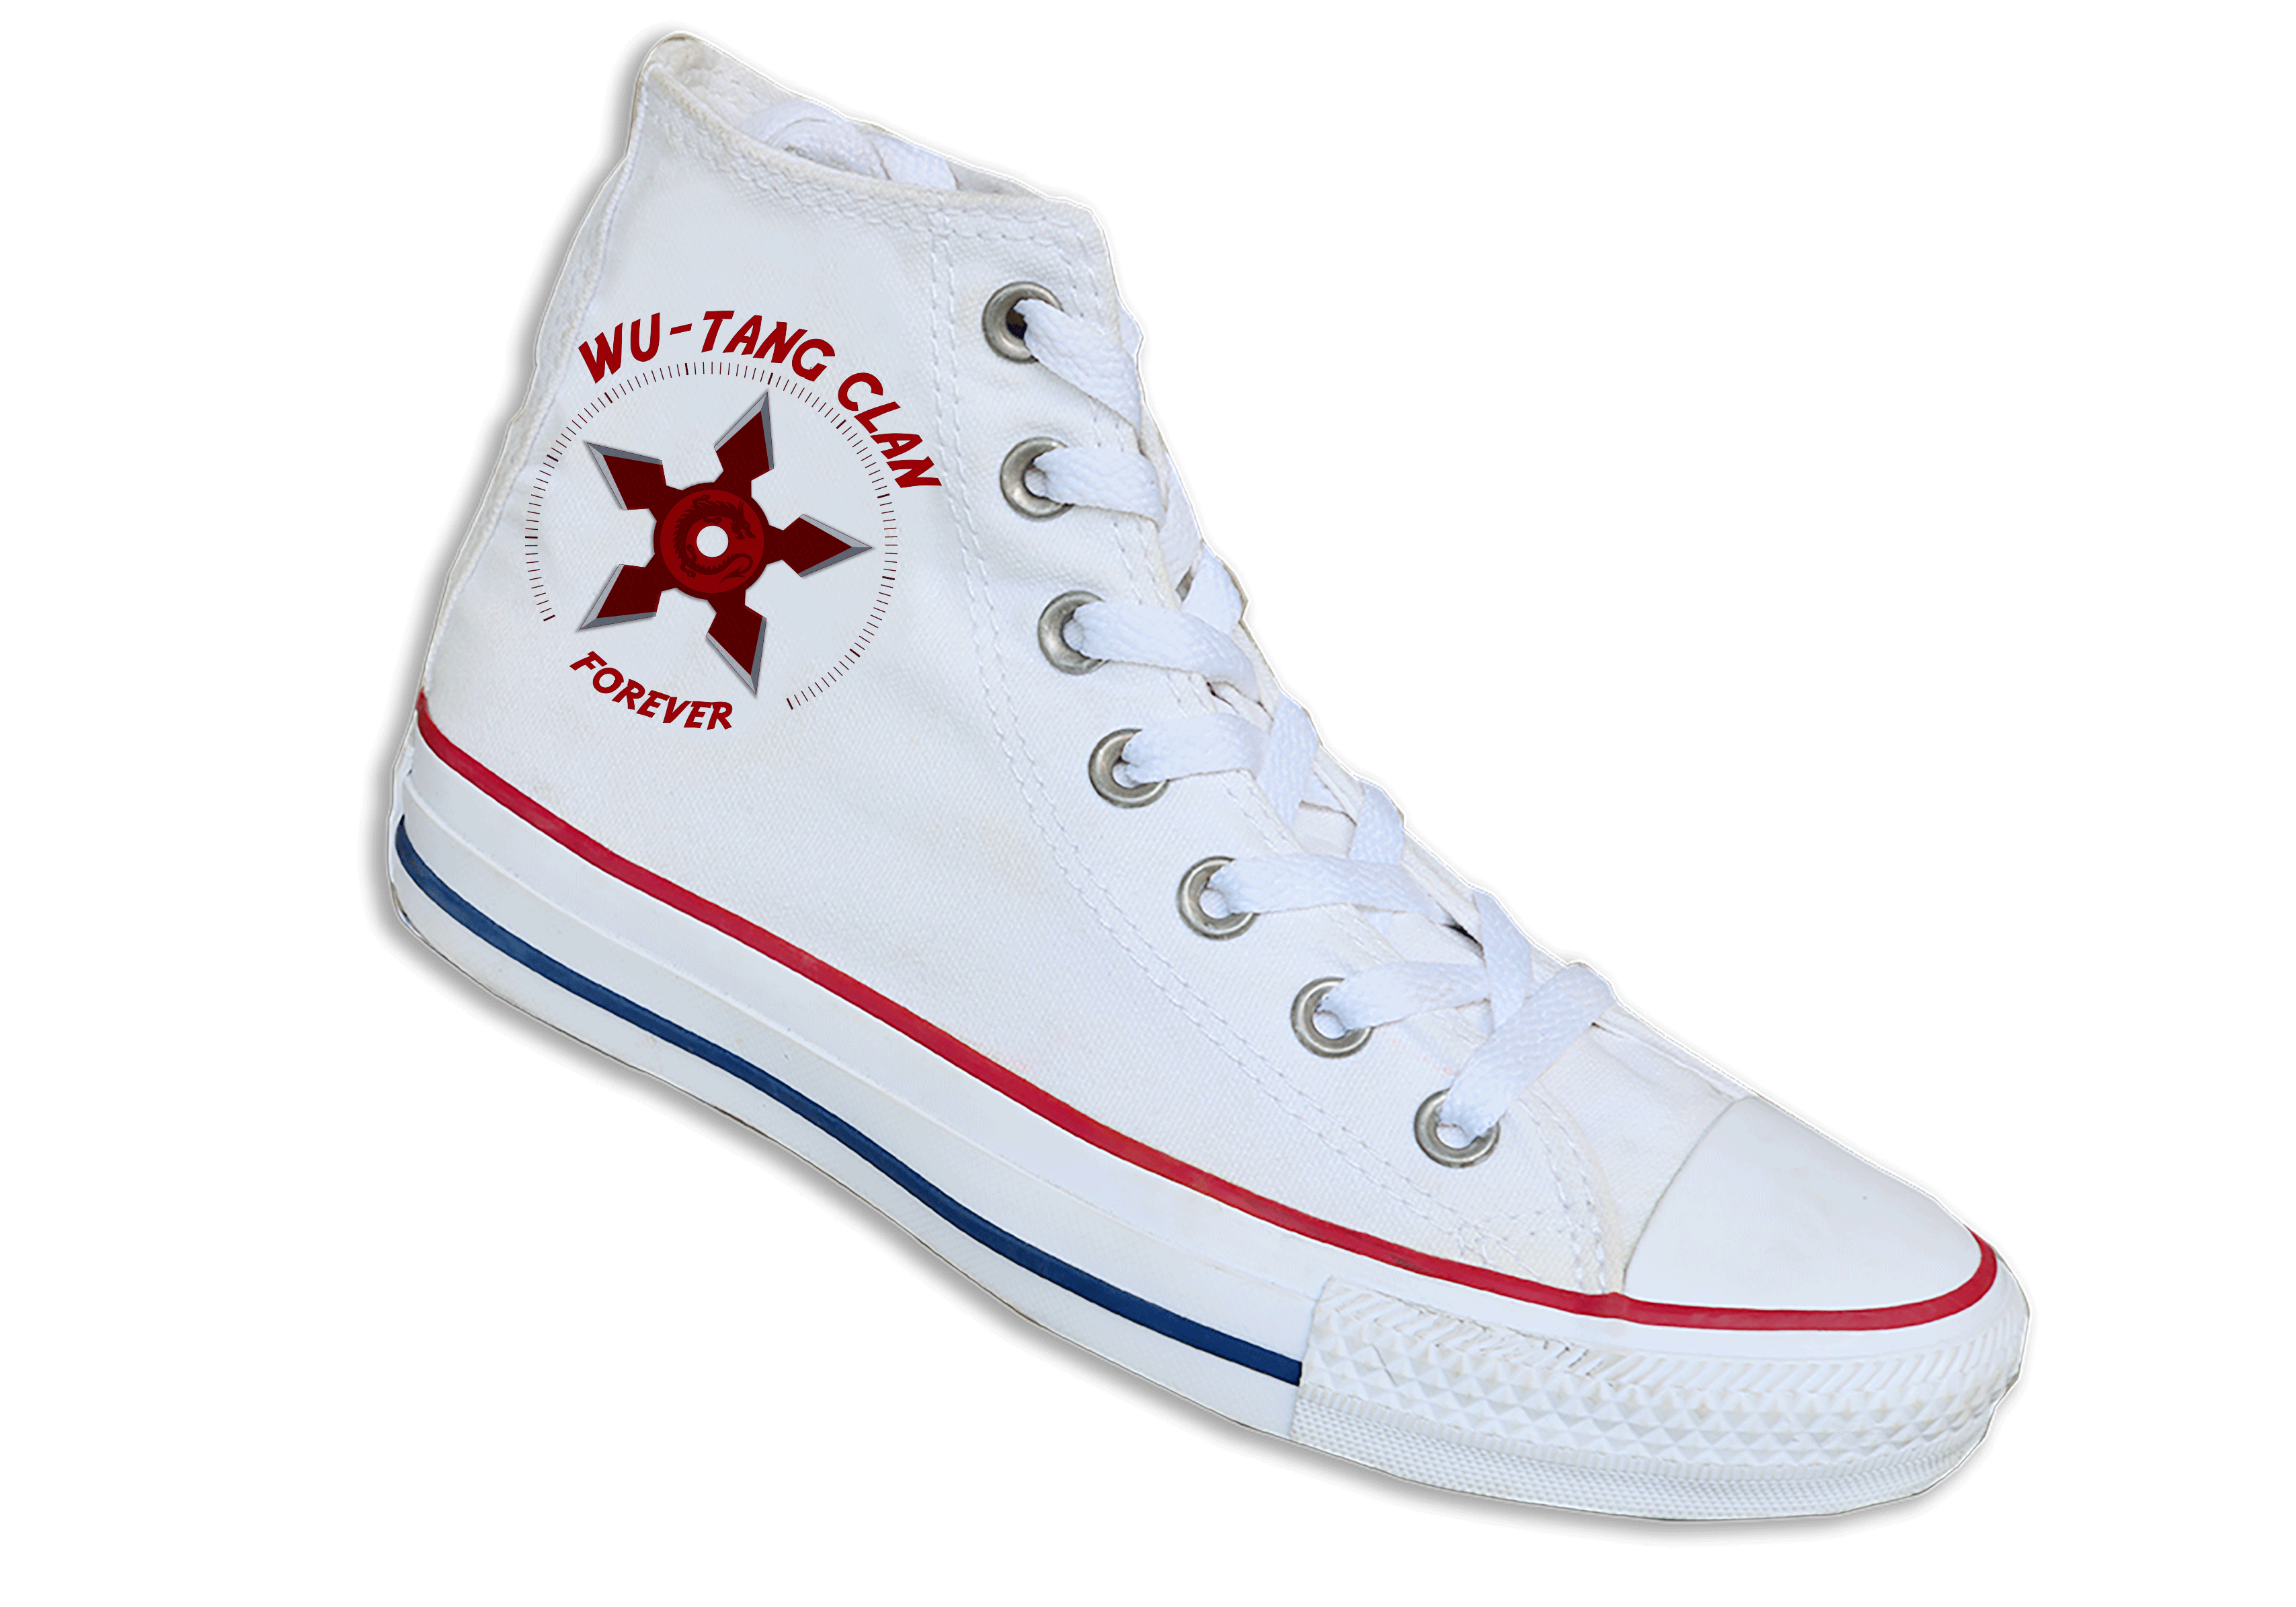 Converse transparent all star. Wu tang clan inspired